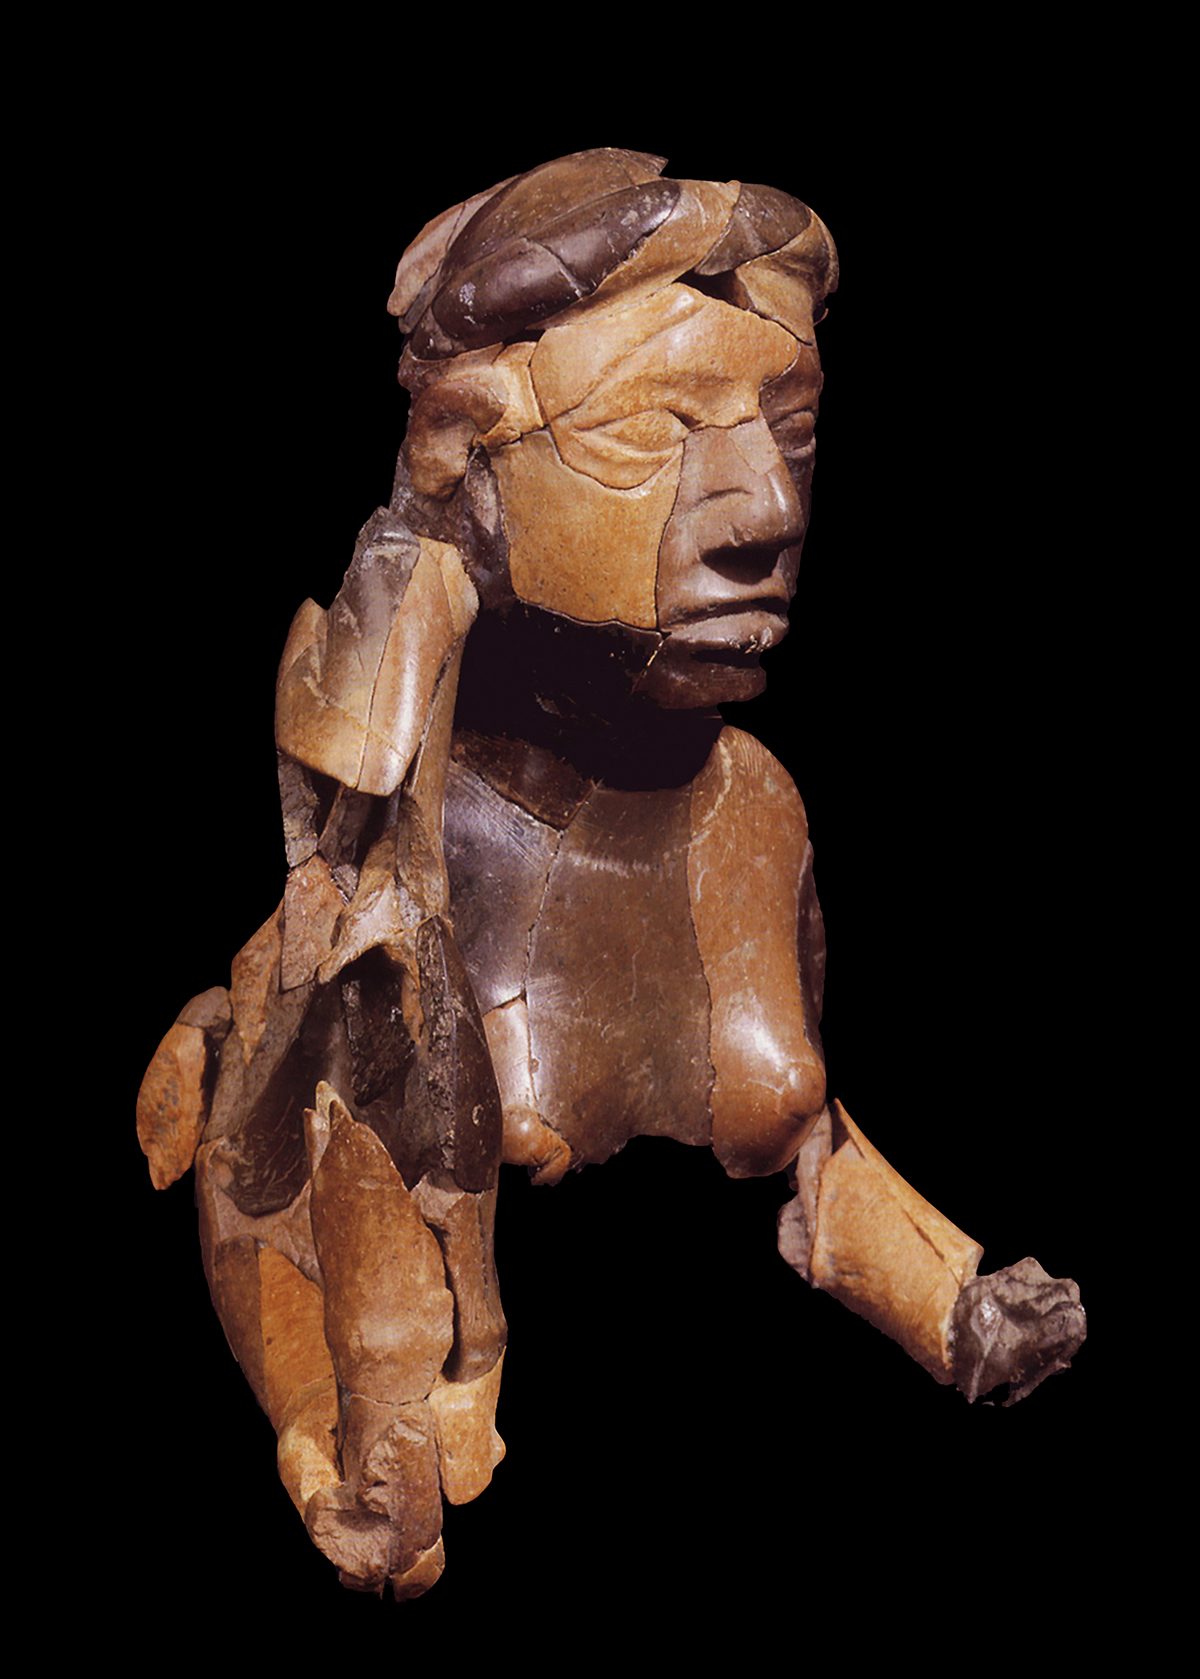 A new exhibit includes the upper torso and head of a red goddess sculpture, carved from stone and found buried at the ancient American Indian city of Cahokia. Note the serpent wrapped around her head. This artifact dates to the 12th century.